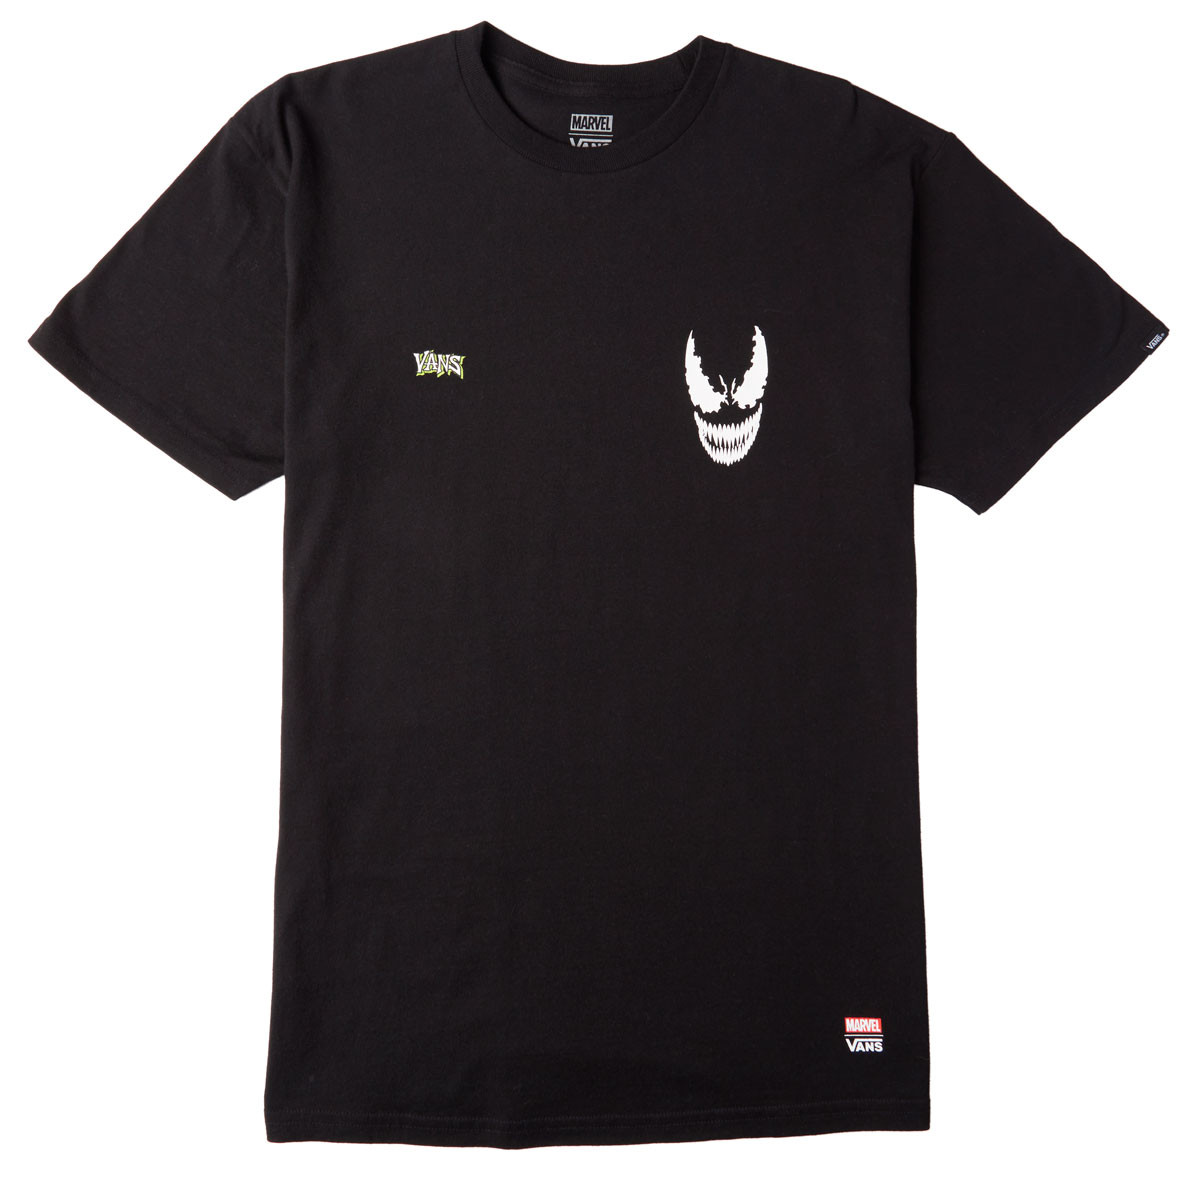 Vans x Marvel Venom T-Shirt - Black